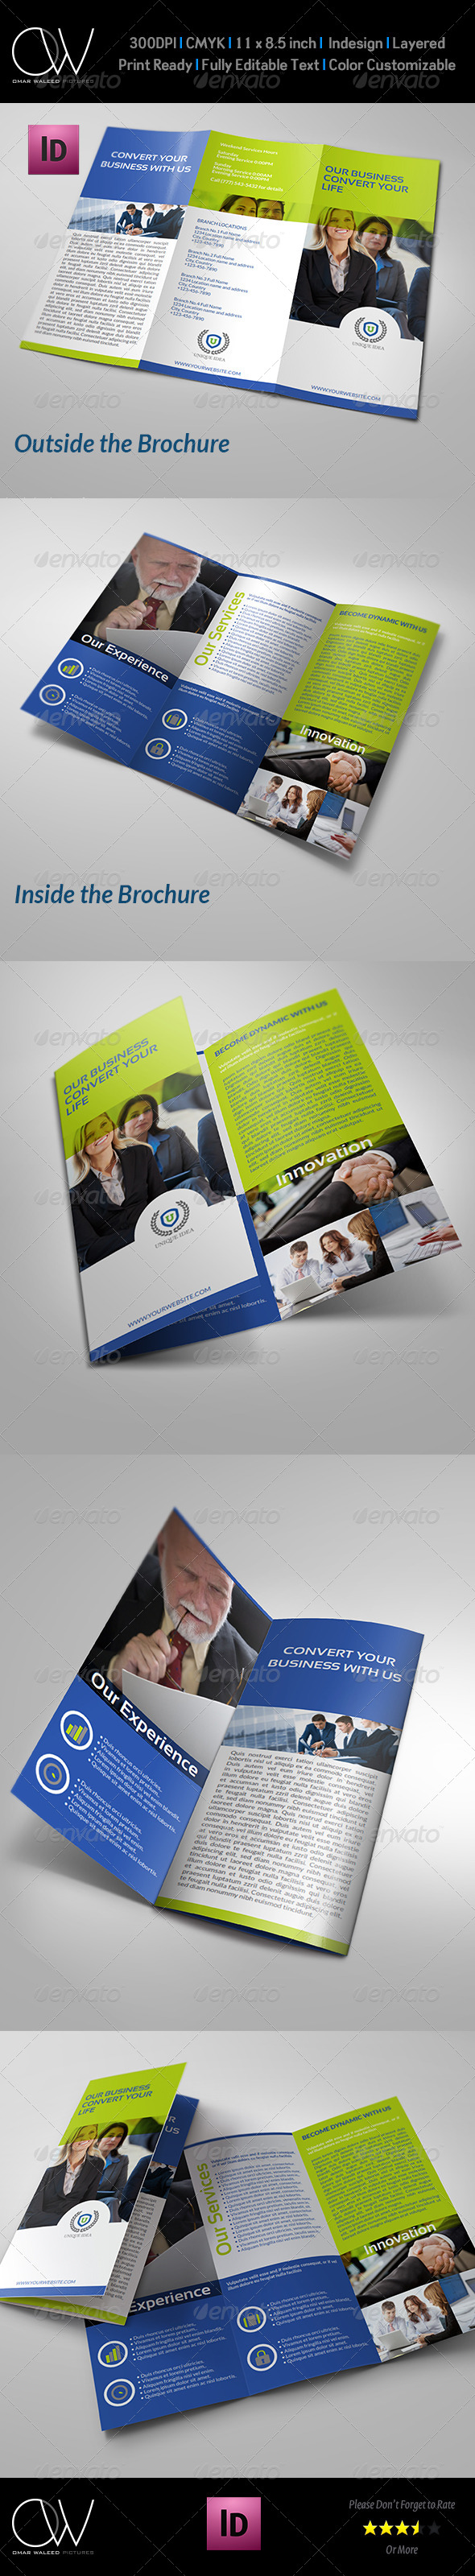 Corporate Business Tri-Fold Brochure Vol.5 - Corporate Brochures